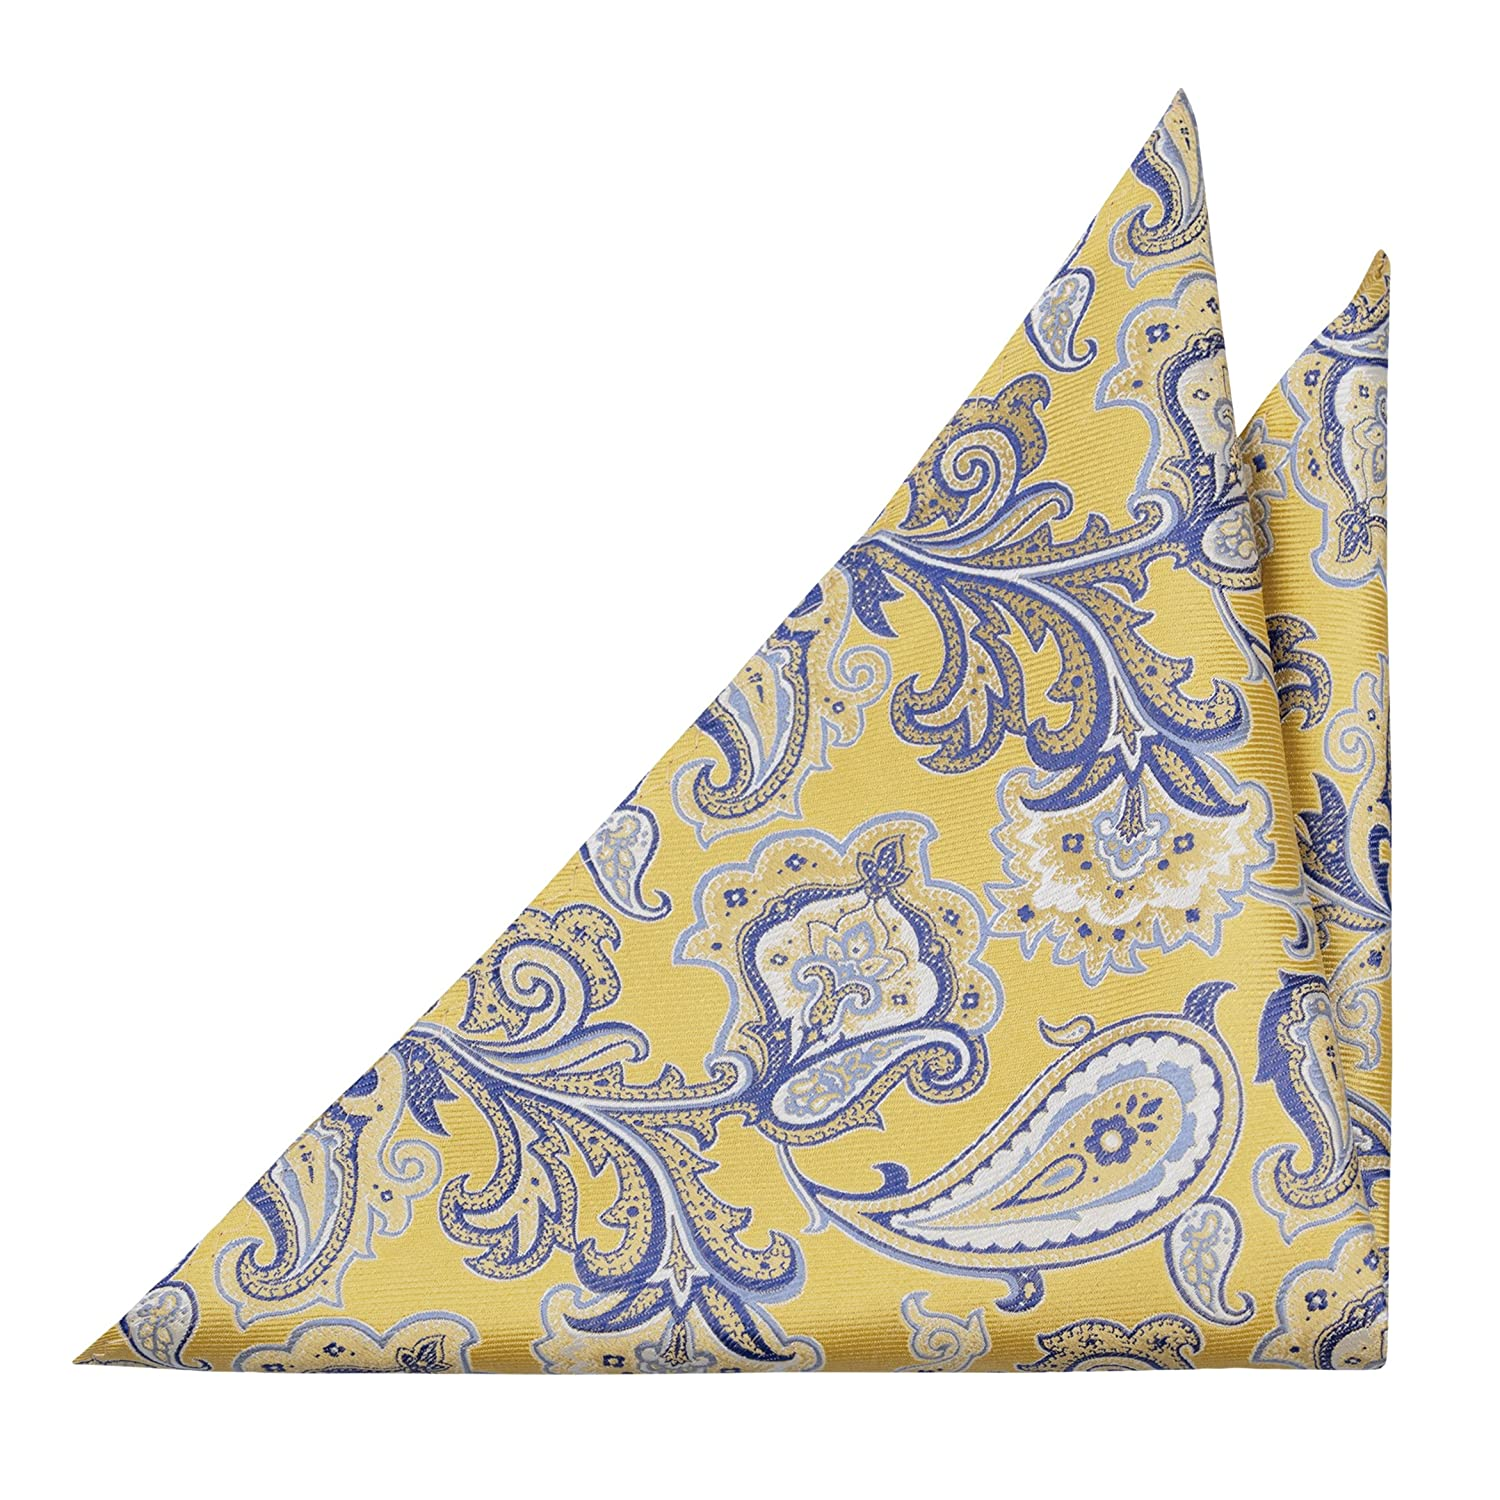 Notch Men's Silk Pocket Square - Big yellow and blue floral pattern, near paisley